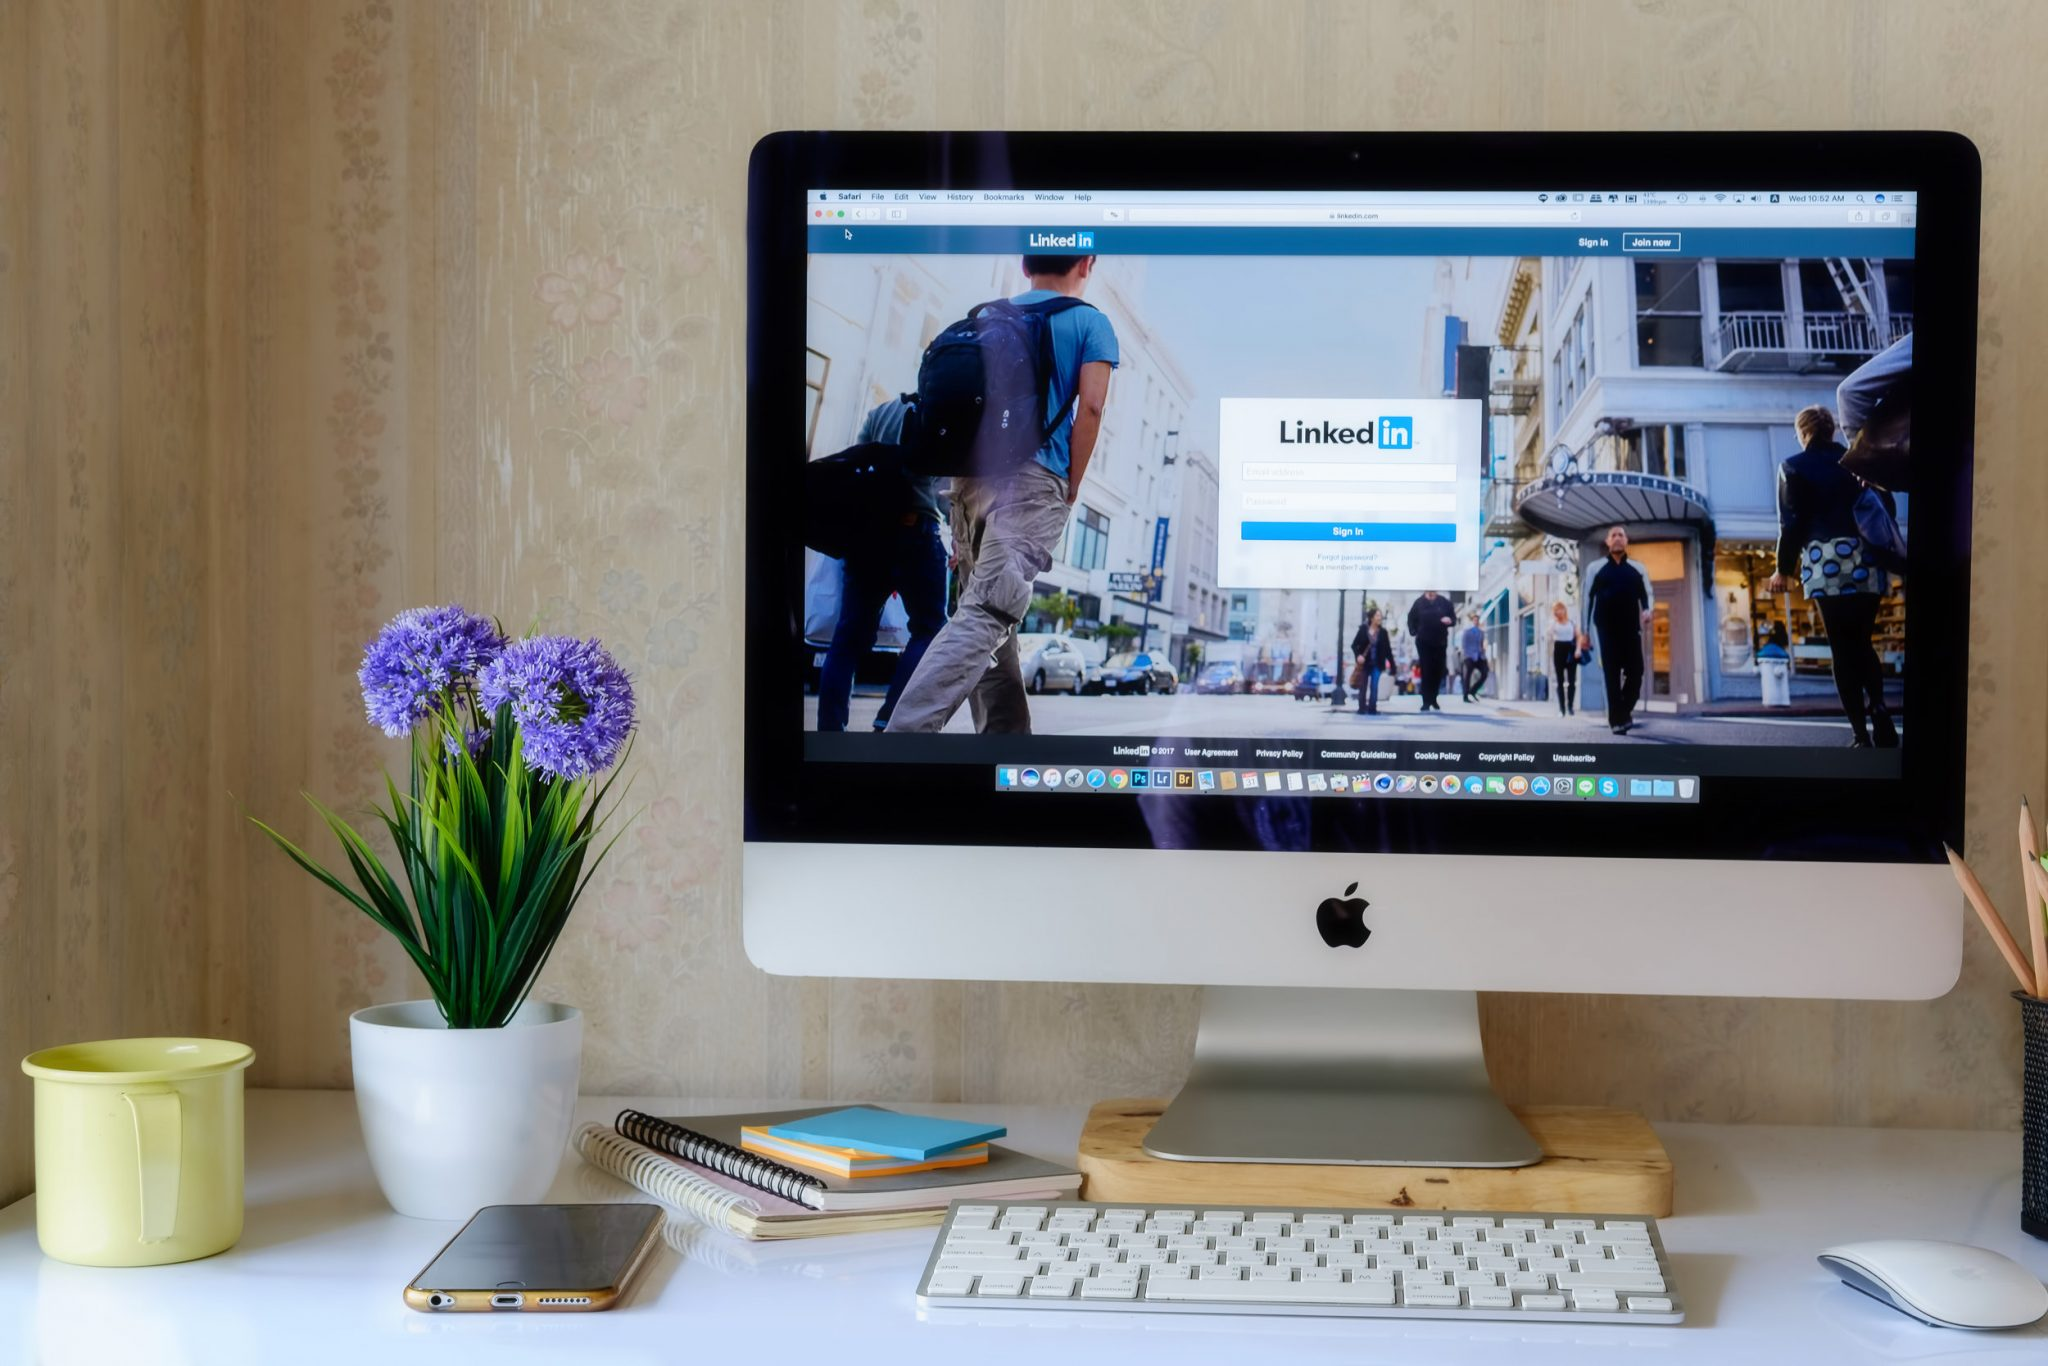 Improve your LinkedIn profile with these 5 tips image